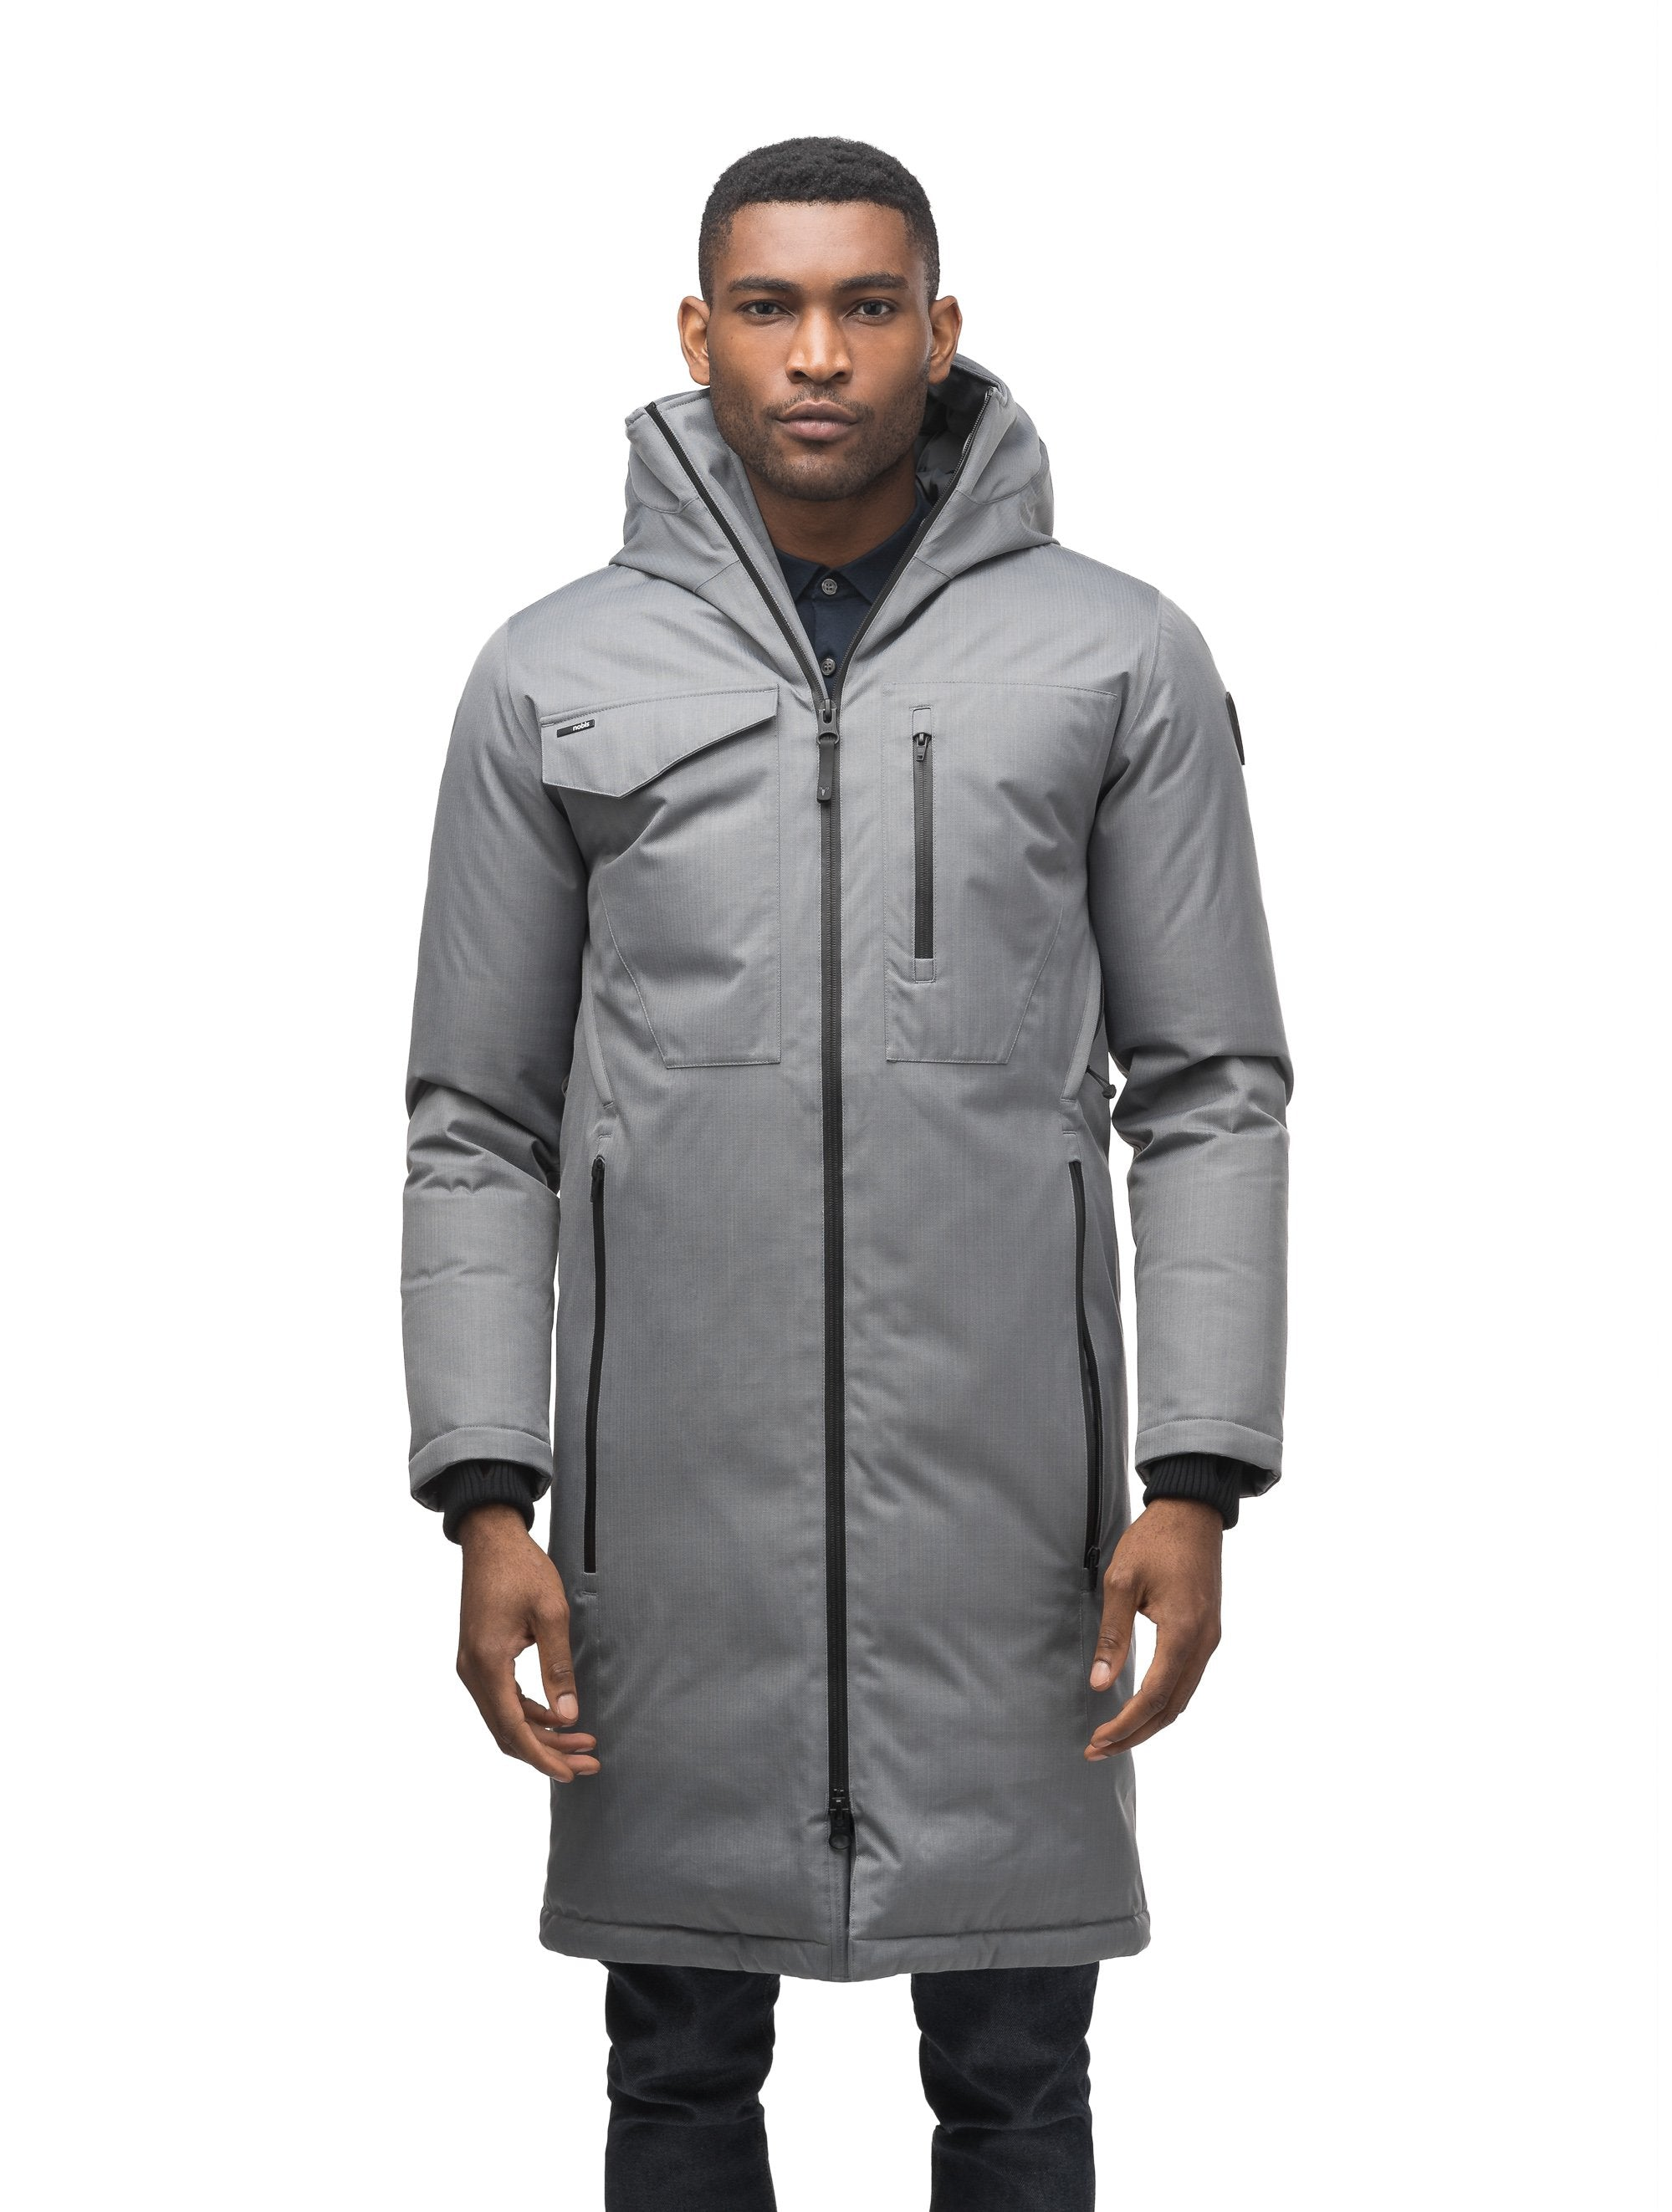 Long men's calf length parka with down fill and exposed zipper that features spacious pockets and zippered vents in Concrete | color